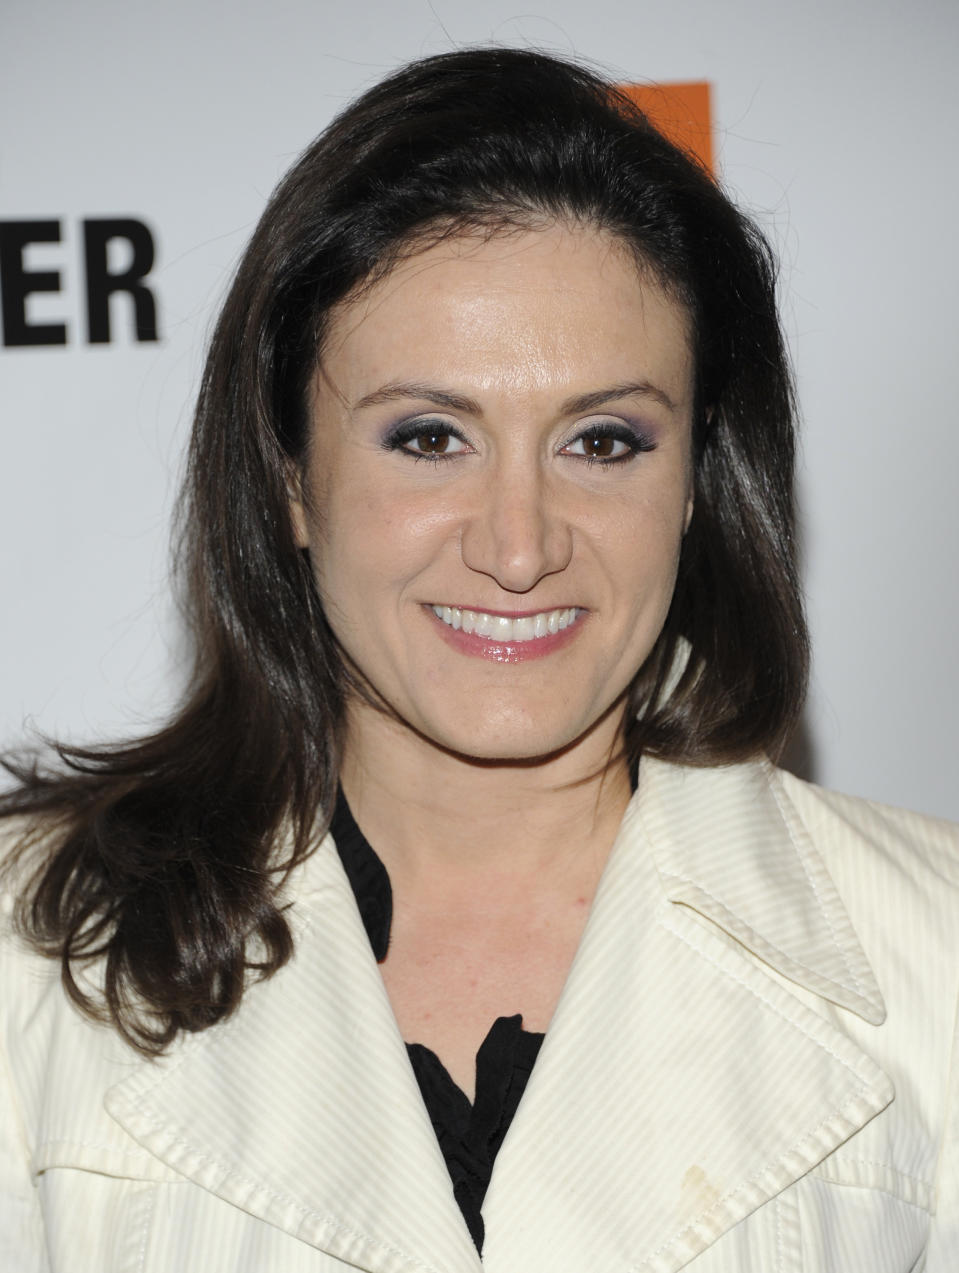 FILE - In this May 4, 2011, file photo, Michelle Caruso-Cabrera arrives at the Walter Reade Theater in New York. The former CNBC anchor will challenge Rep. Alexandria Ocasio-Cortez (D-N.Y.) in the Democratic primary on June 23, 2020. (AP Photo/Evan Agostini, File)